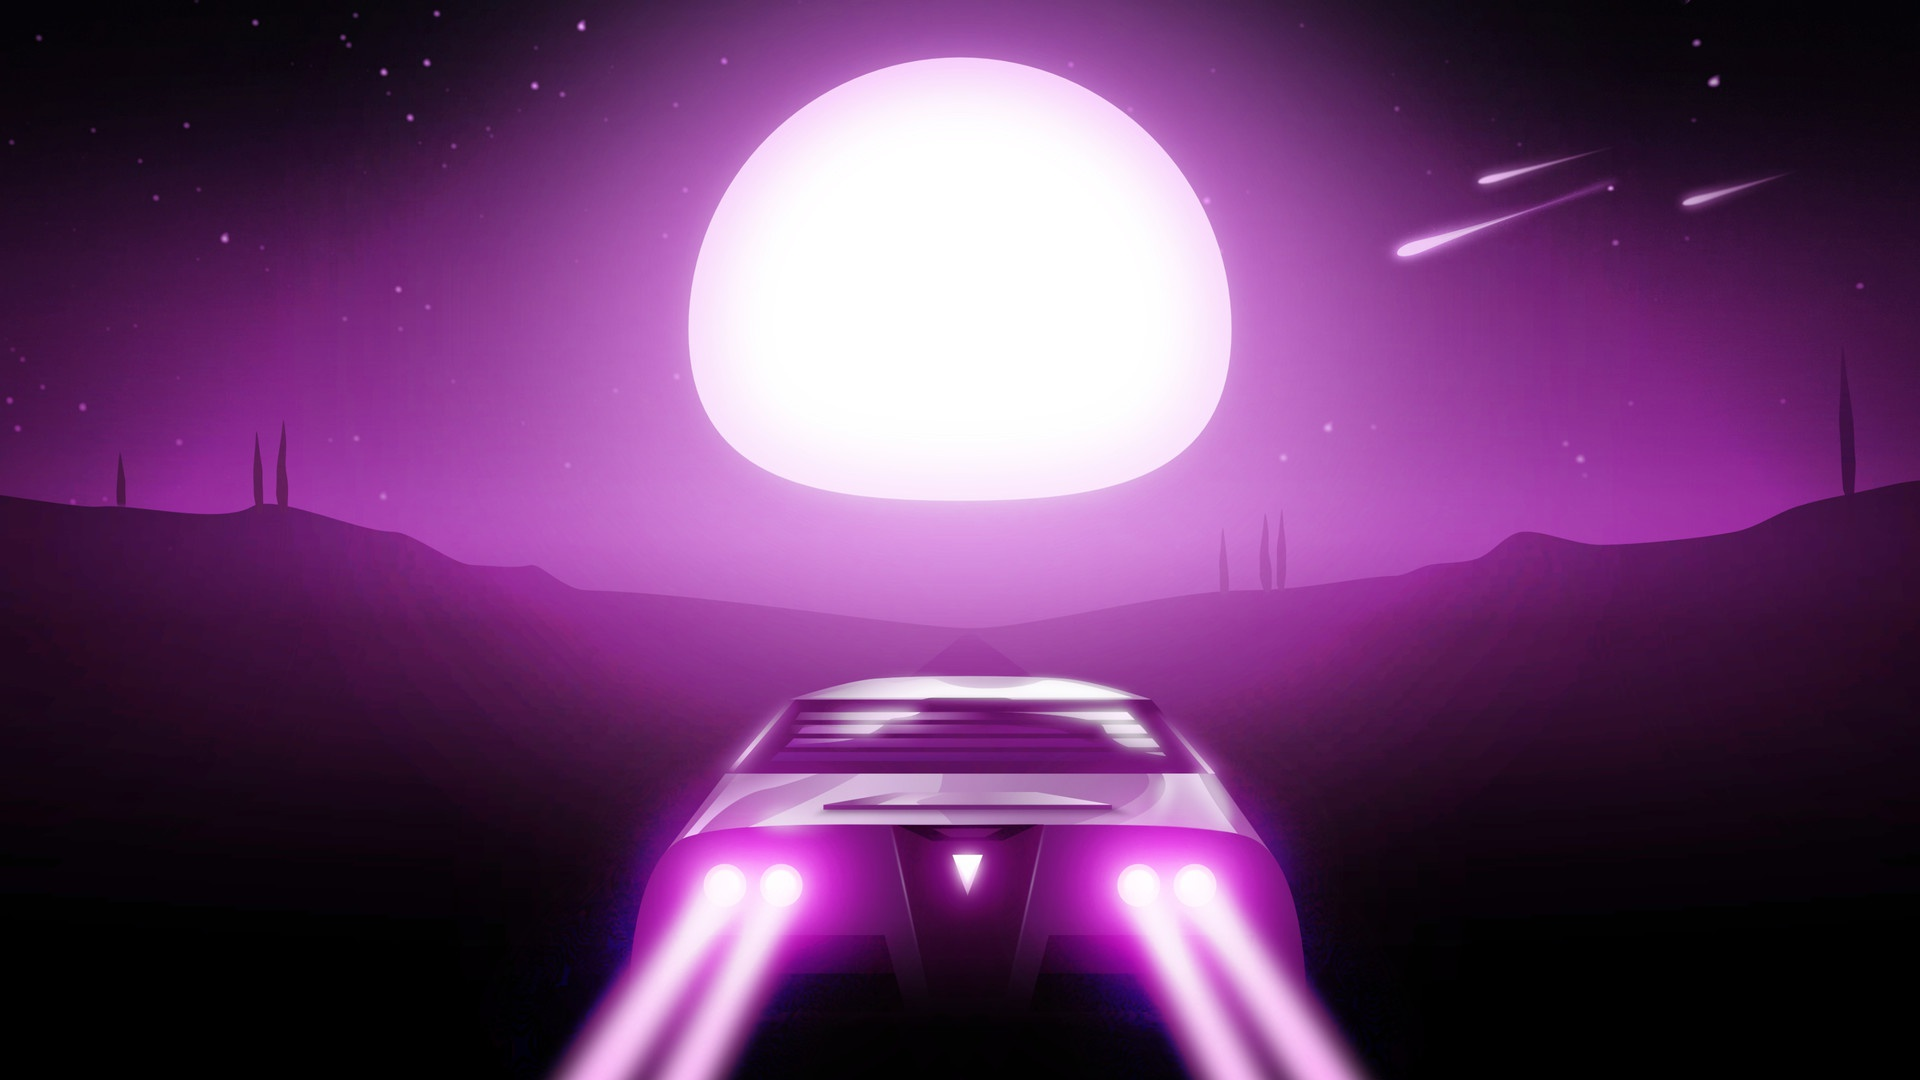 Chillwave Car Wallpaper 1440x900 Night Drive Synthwave Hd Artist 4k Wallpapers Images